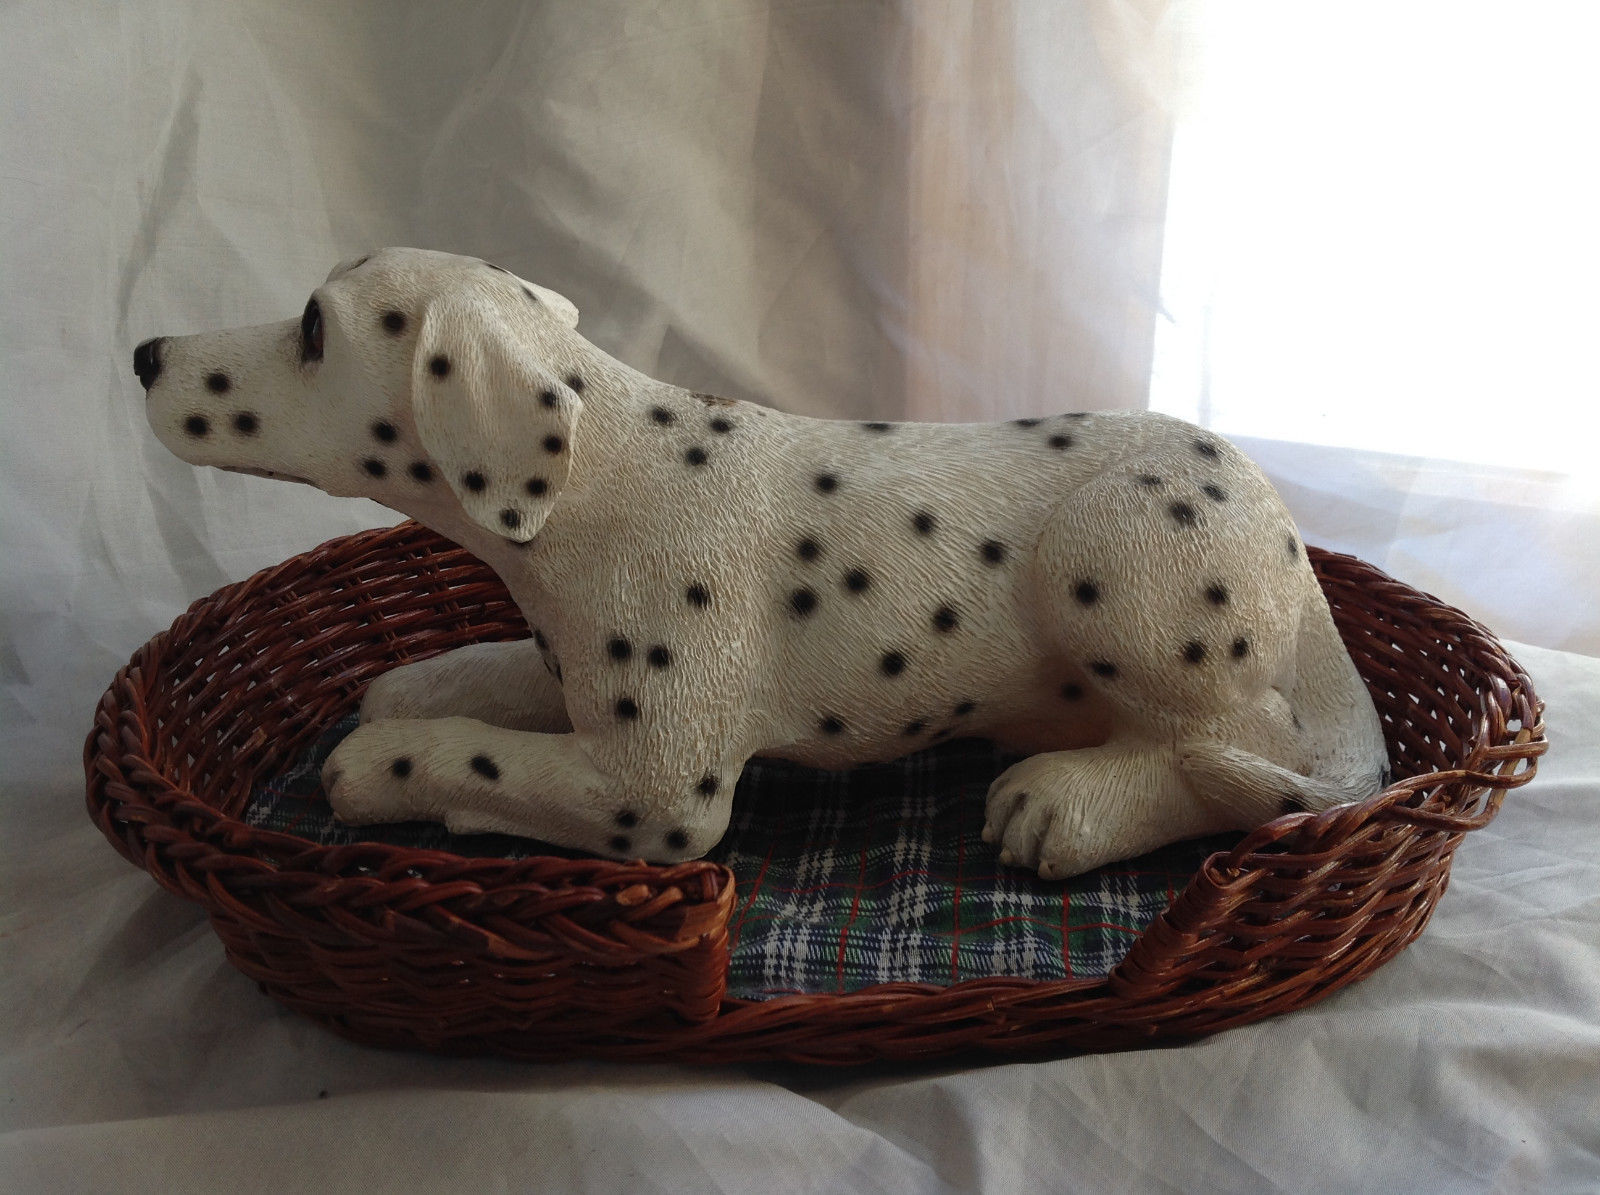 Cute Dalmatian Statue Laying in Basket Bed See Measurements Below